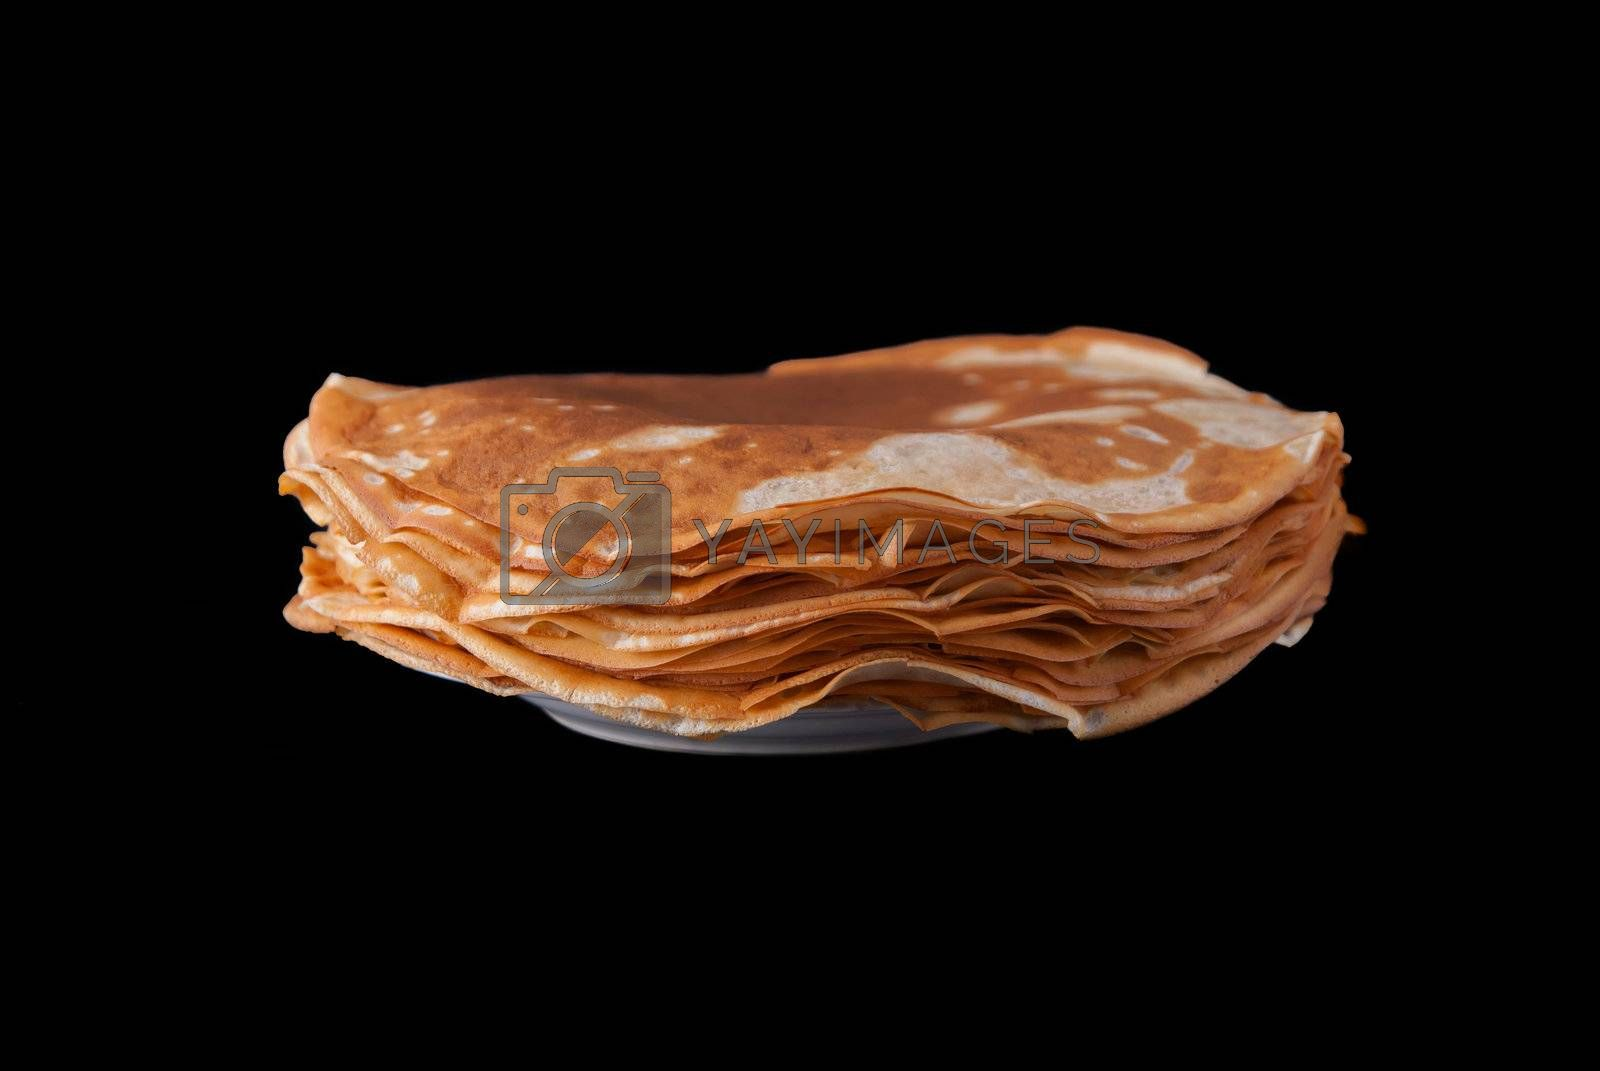 Russian pancakes pile on plate, isolated on black background